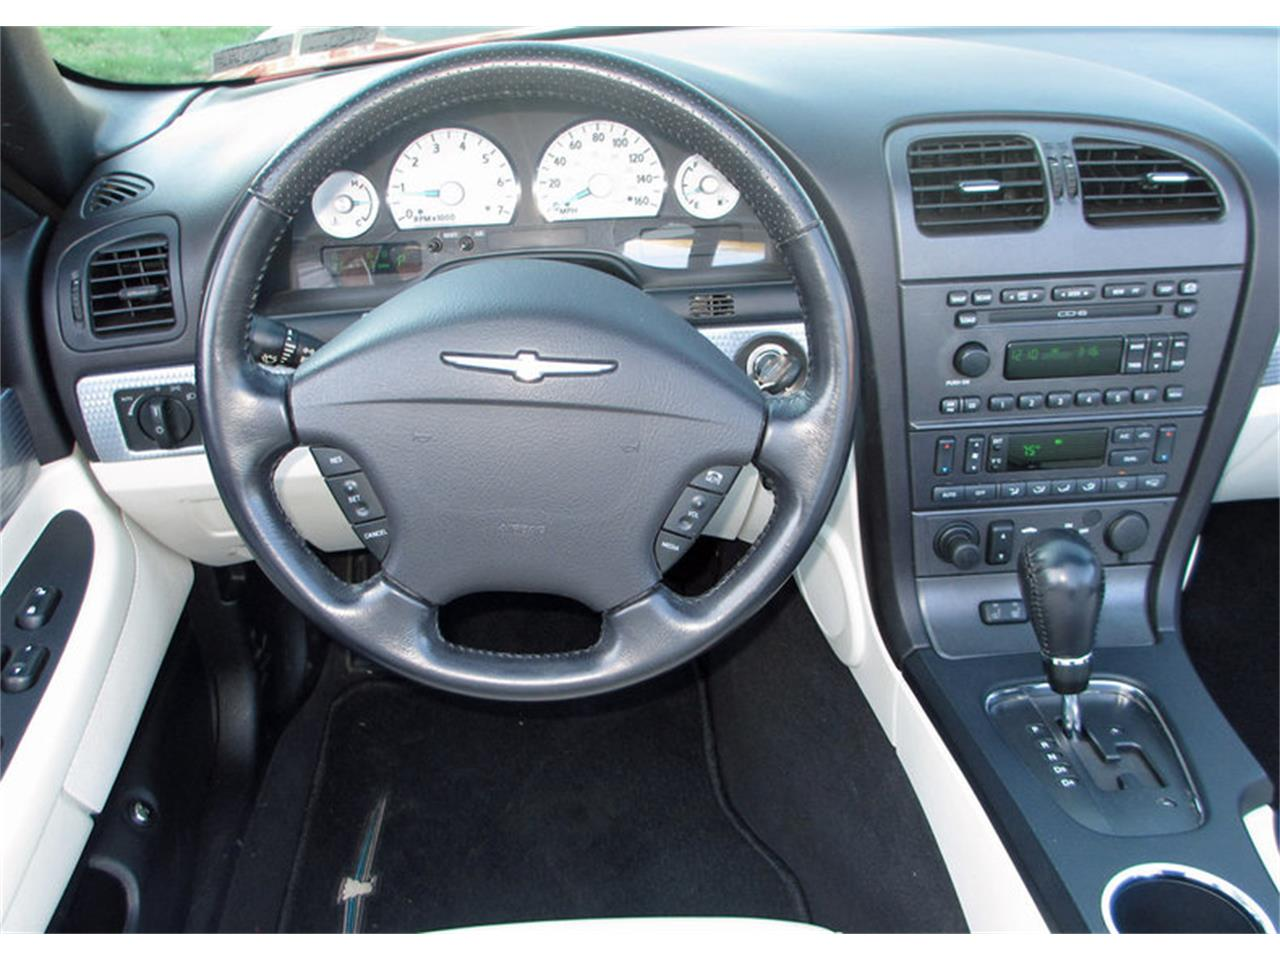 Large Picture of '03 Ford Thunderbird - $28,500.00 - J7OZ